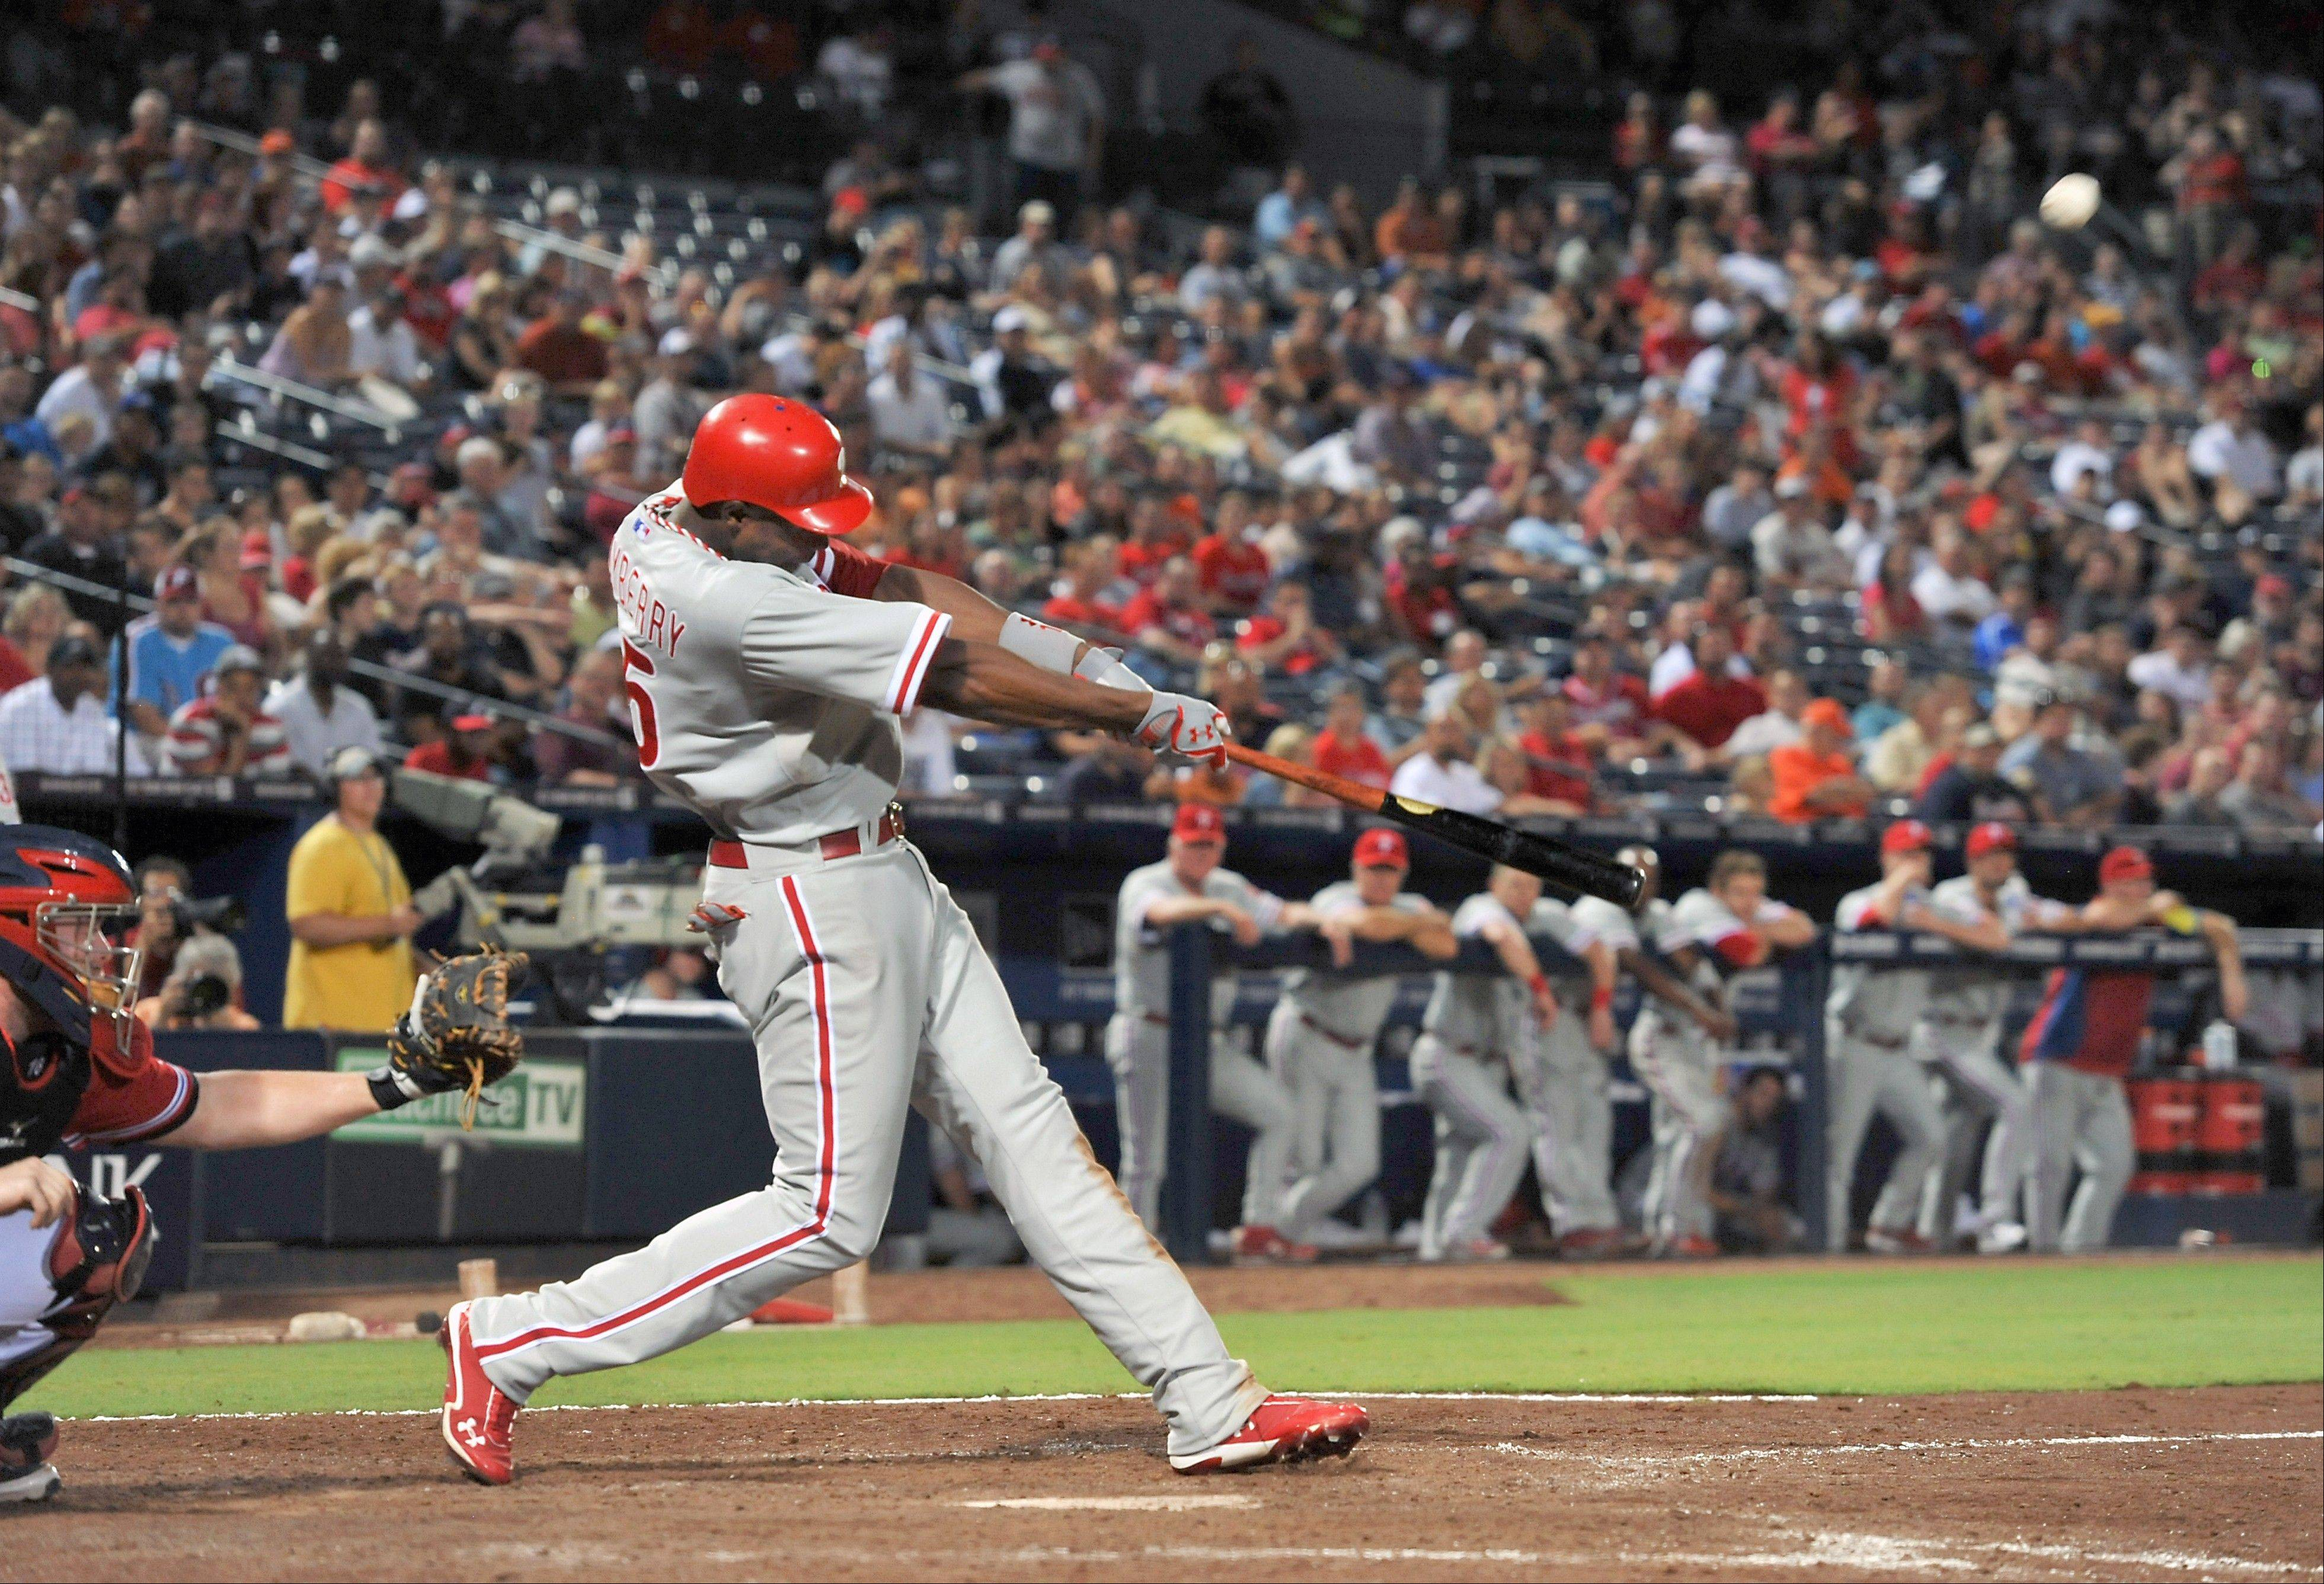 Philadelphia's John Mayberry connects on his go-ahead three-run home run against the Atlanta Braves during the 10th inning Friday in Atlanta.